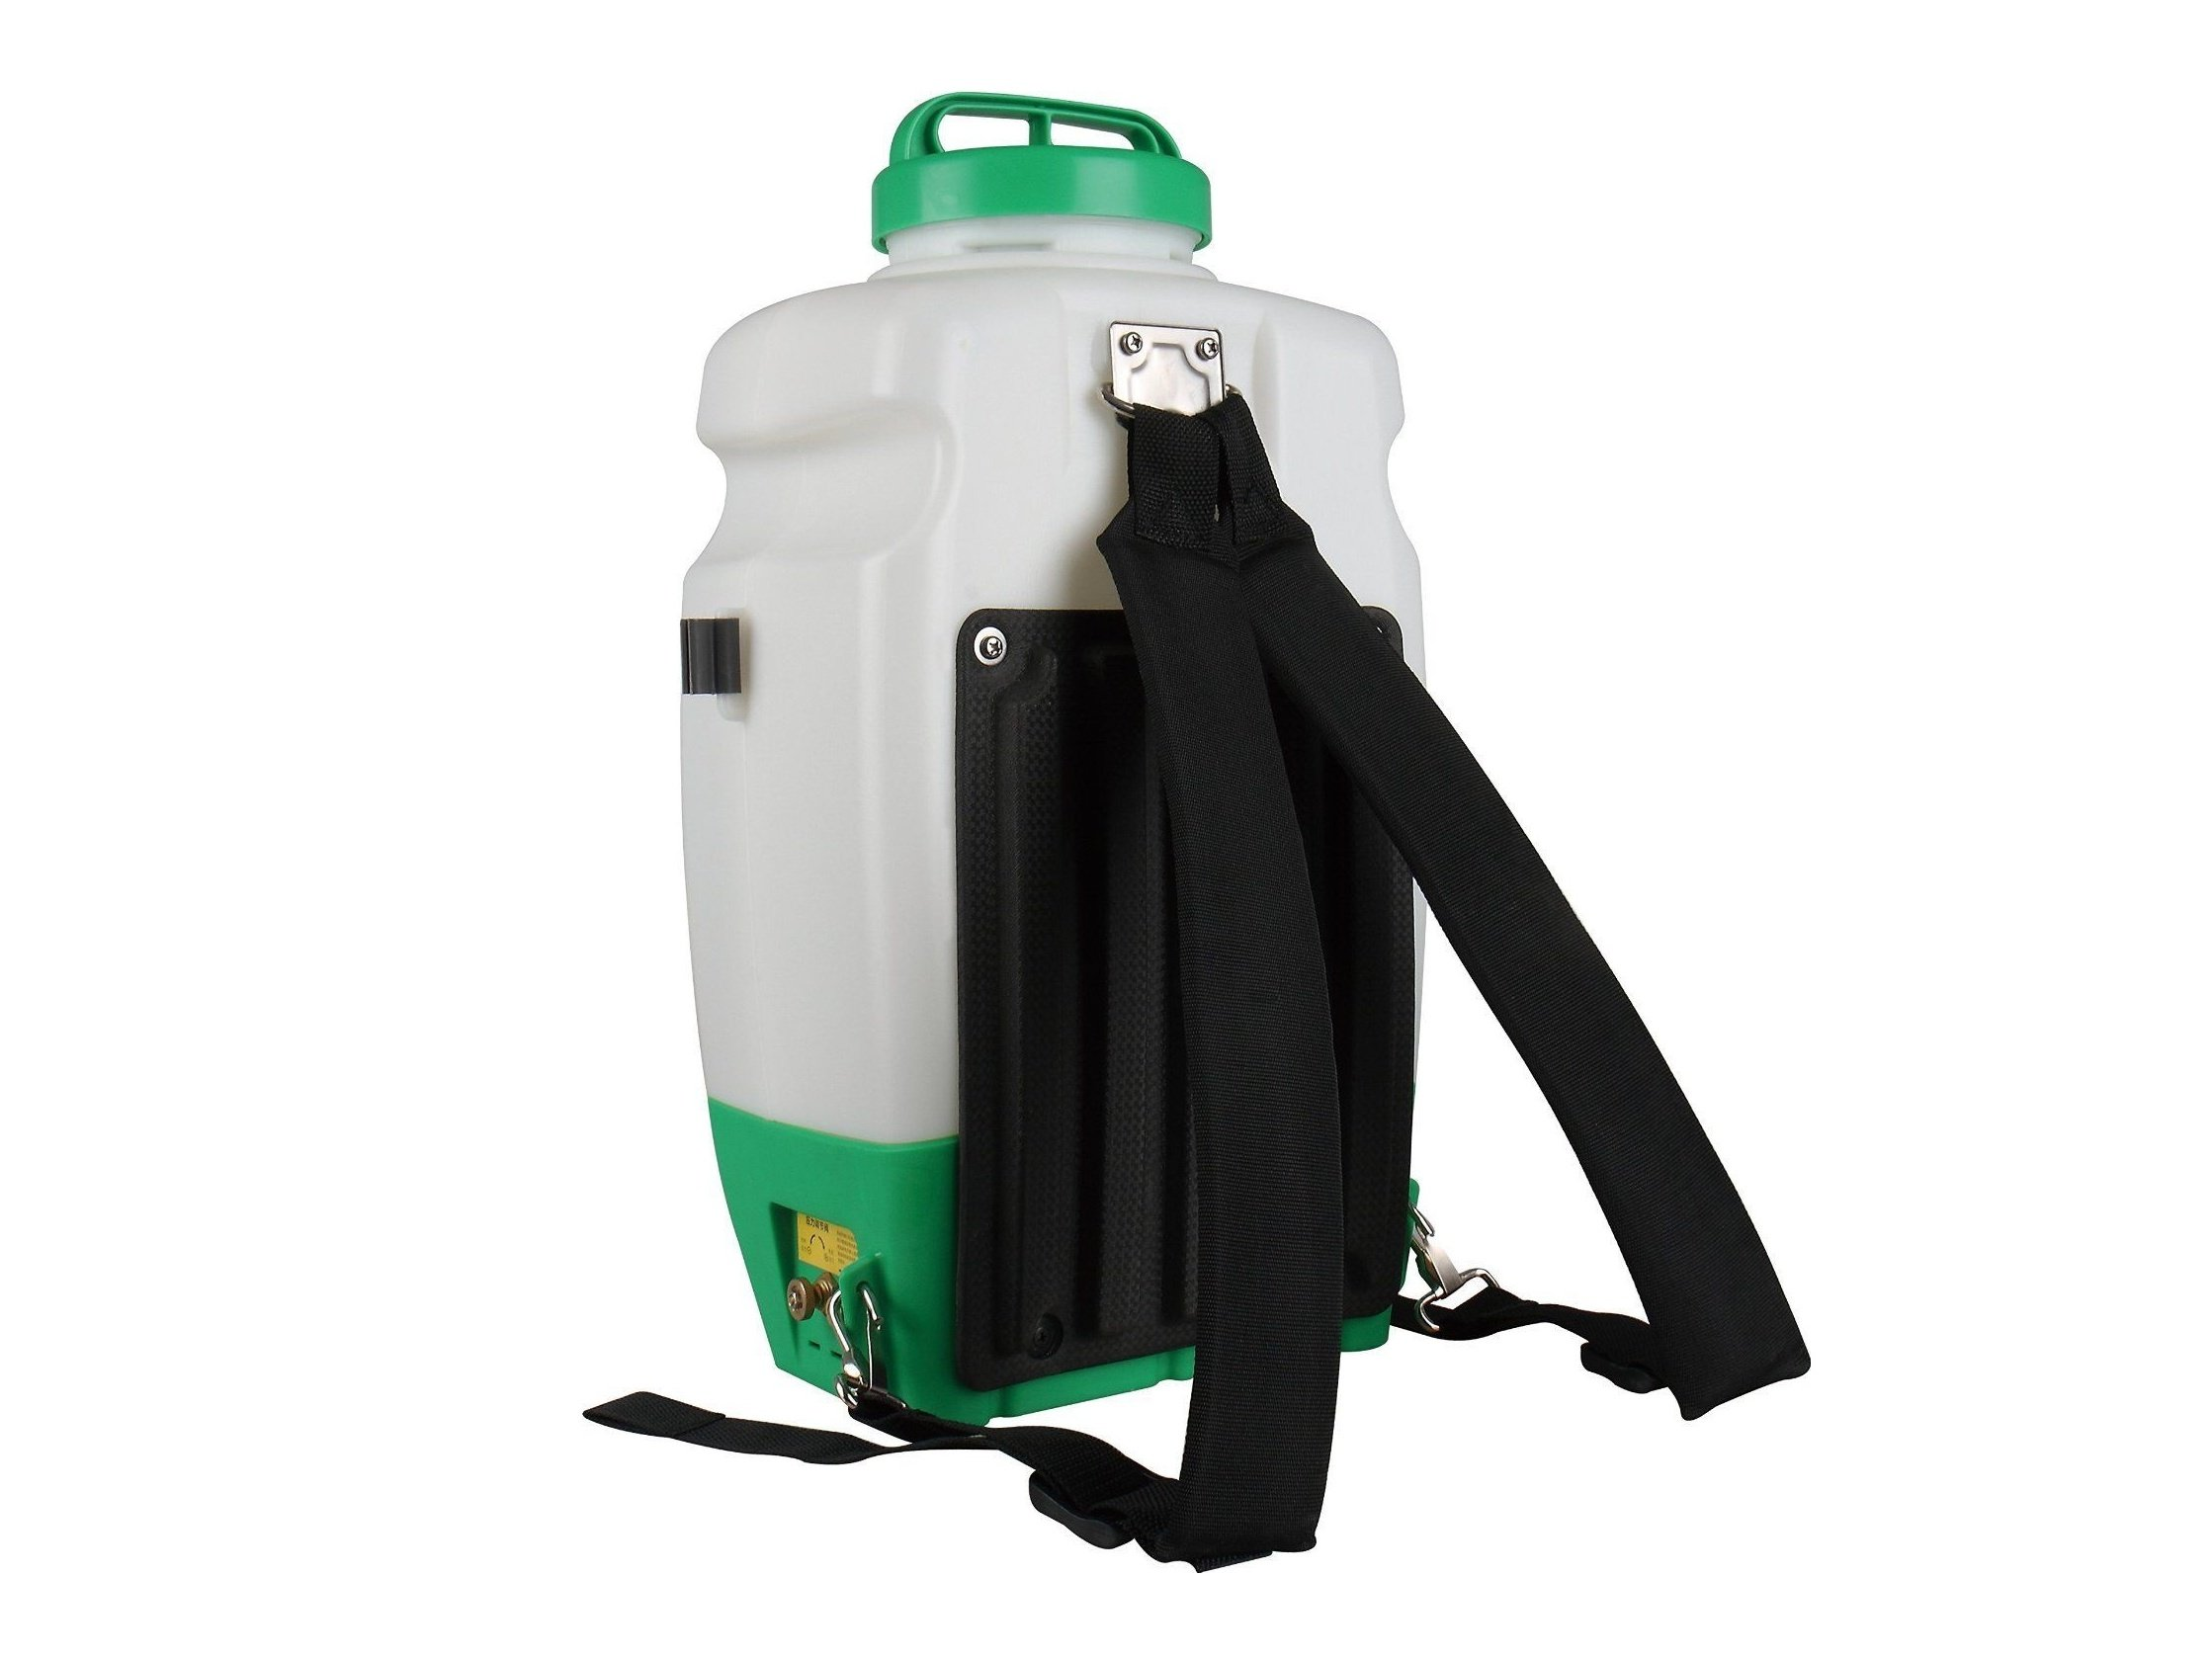 Knapsack Agricultural Electric Sprayer SeaFlo Model - 16 liter with 12-volt rechargeable battery - BC-3865 by Five Oceans (Image #2)